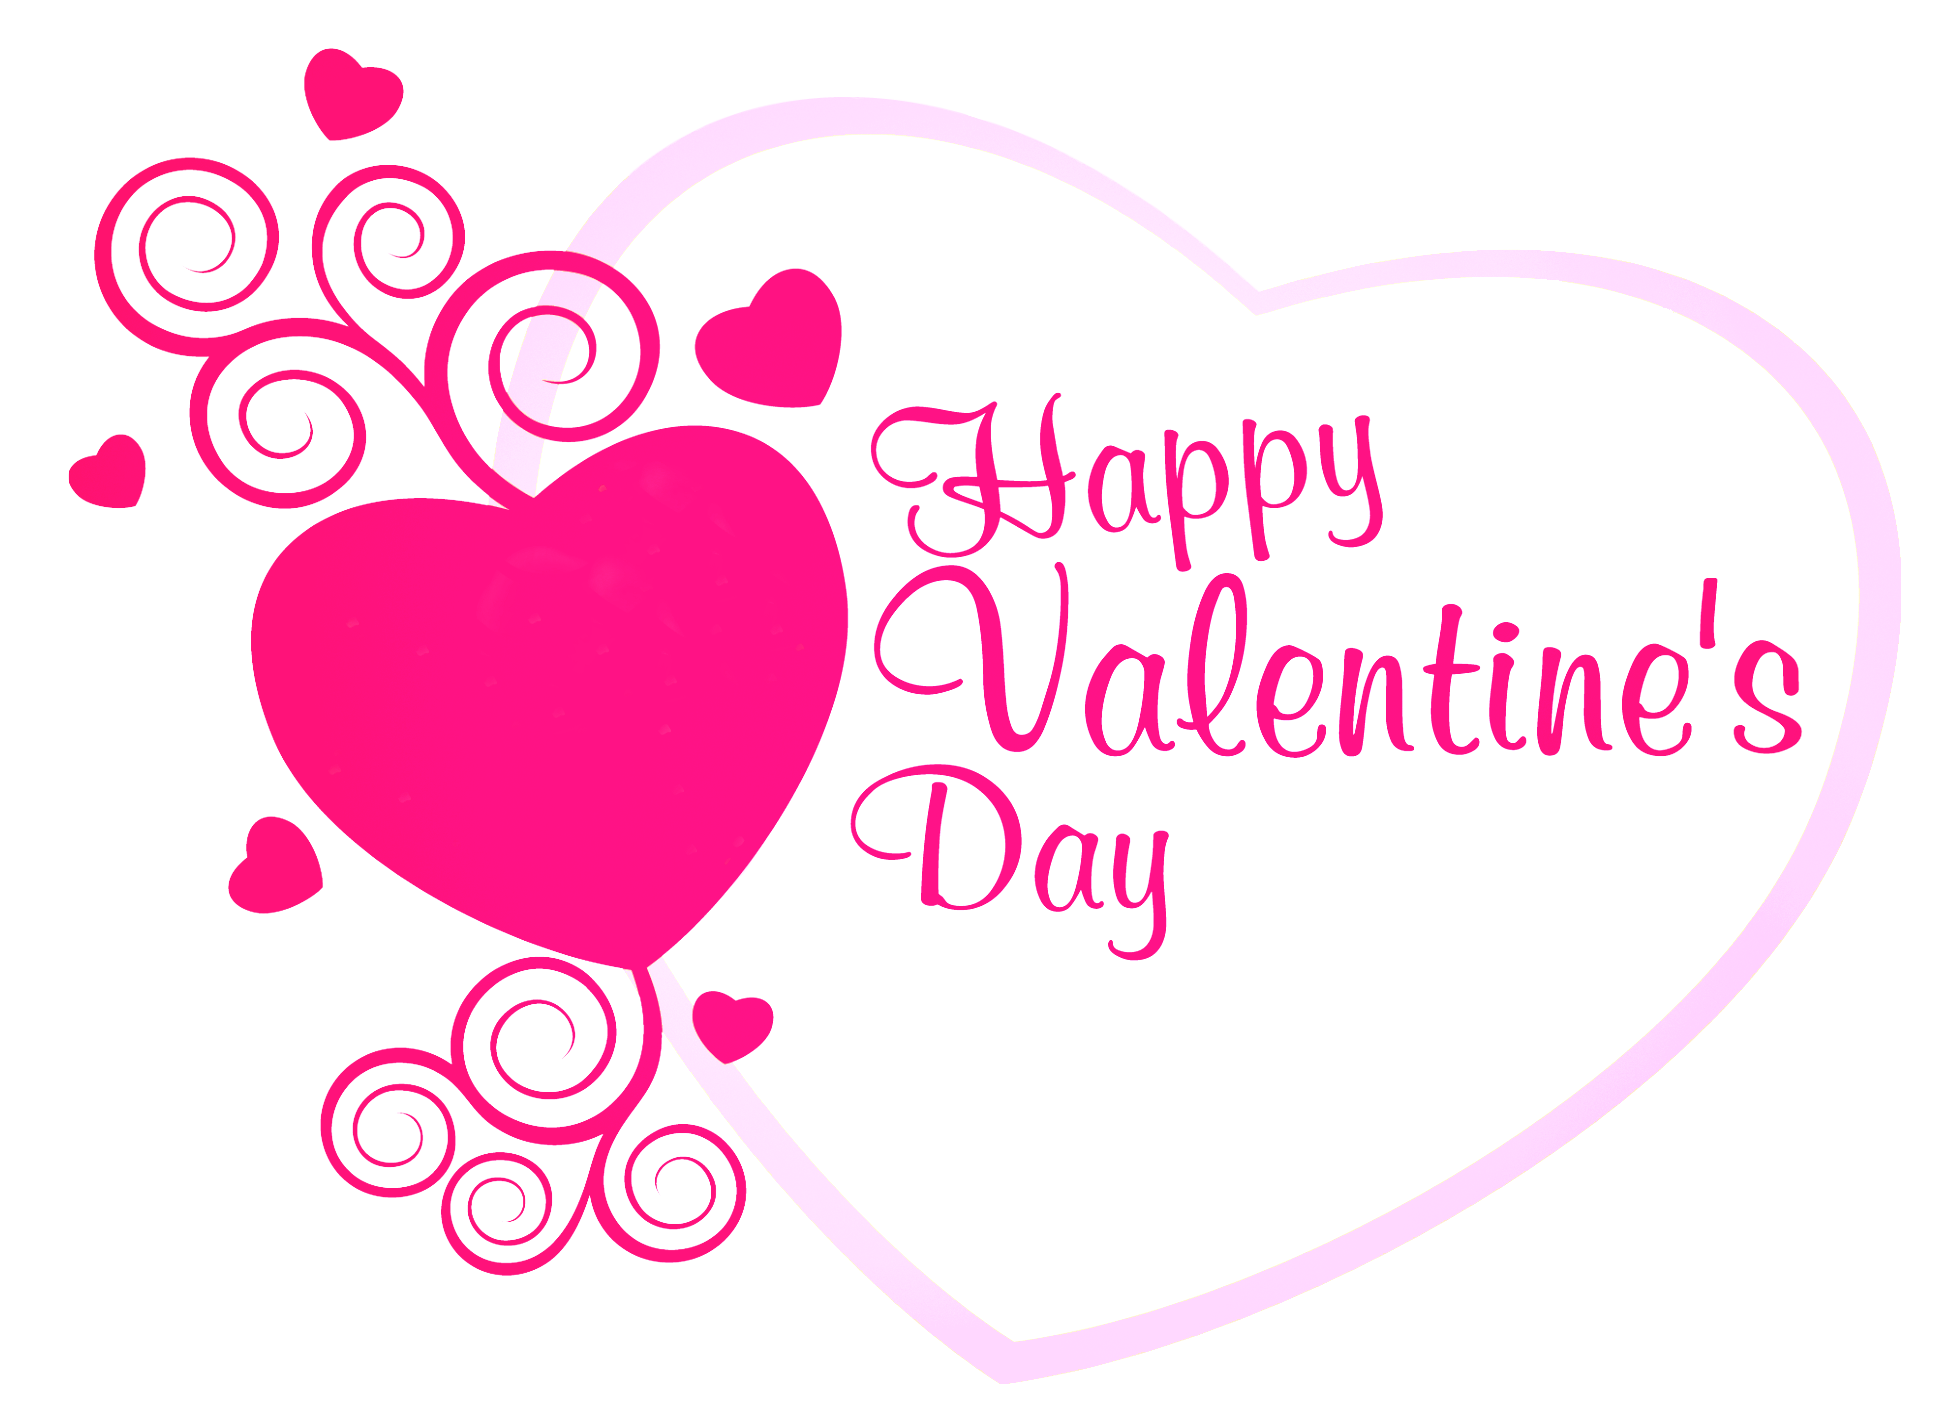 Valentines Day Clipart Images - Happy Valentines Day Clip Art